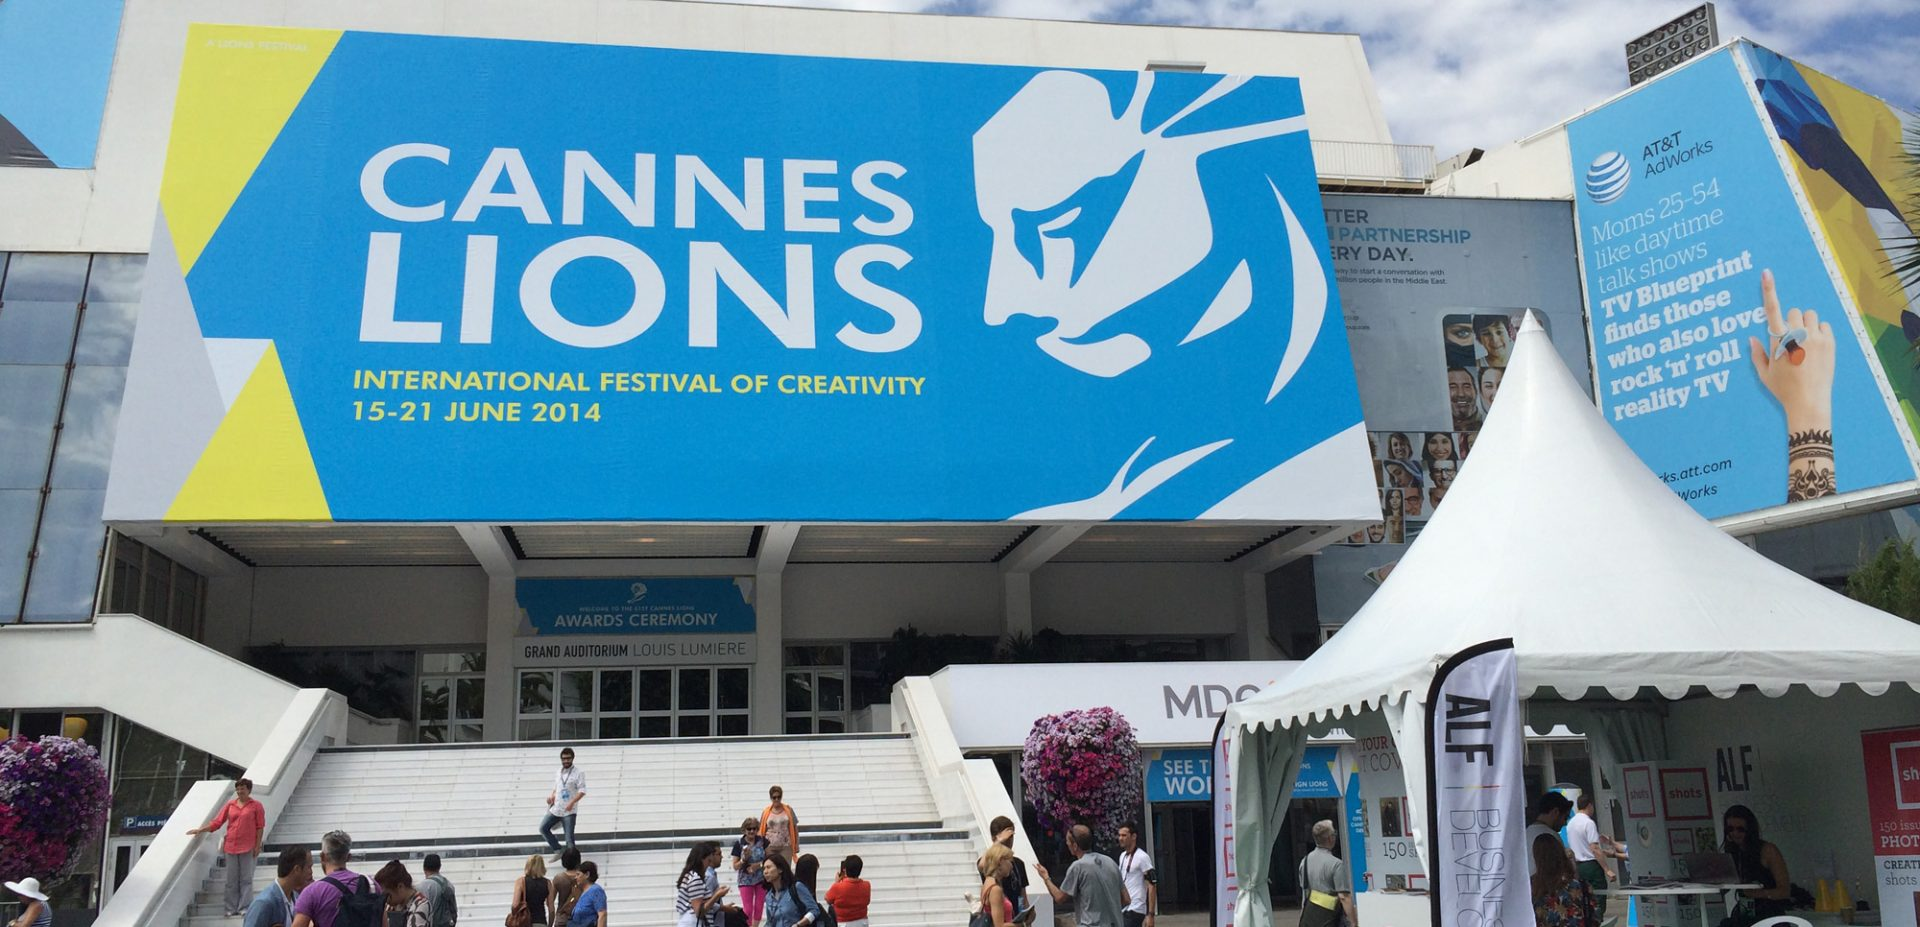 Weber Shandwick Wins Gold, Silver and Bronze PR Lions at 2014 Cannes Lions International Festival of Creativity